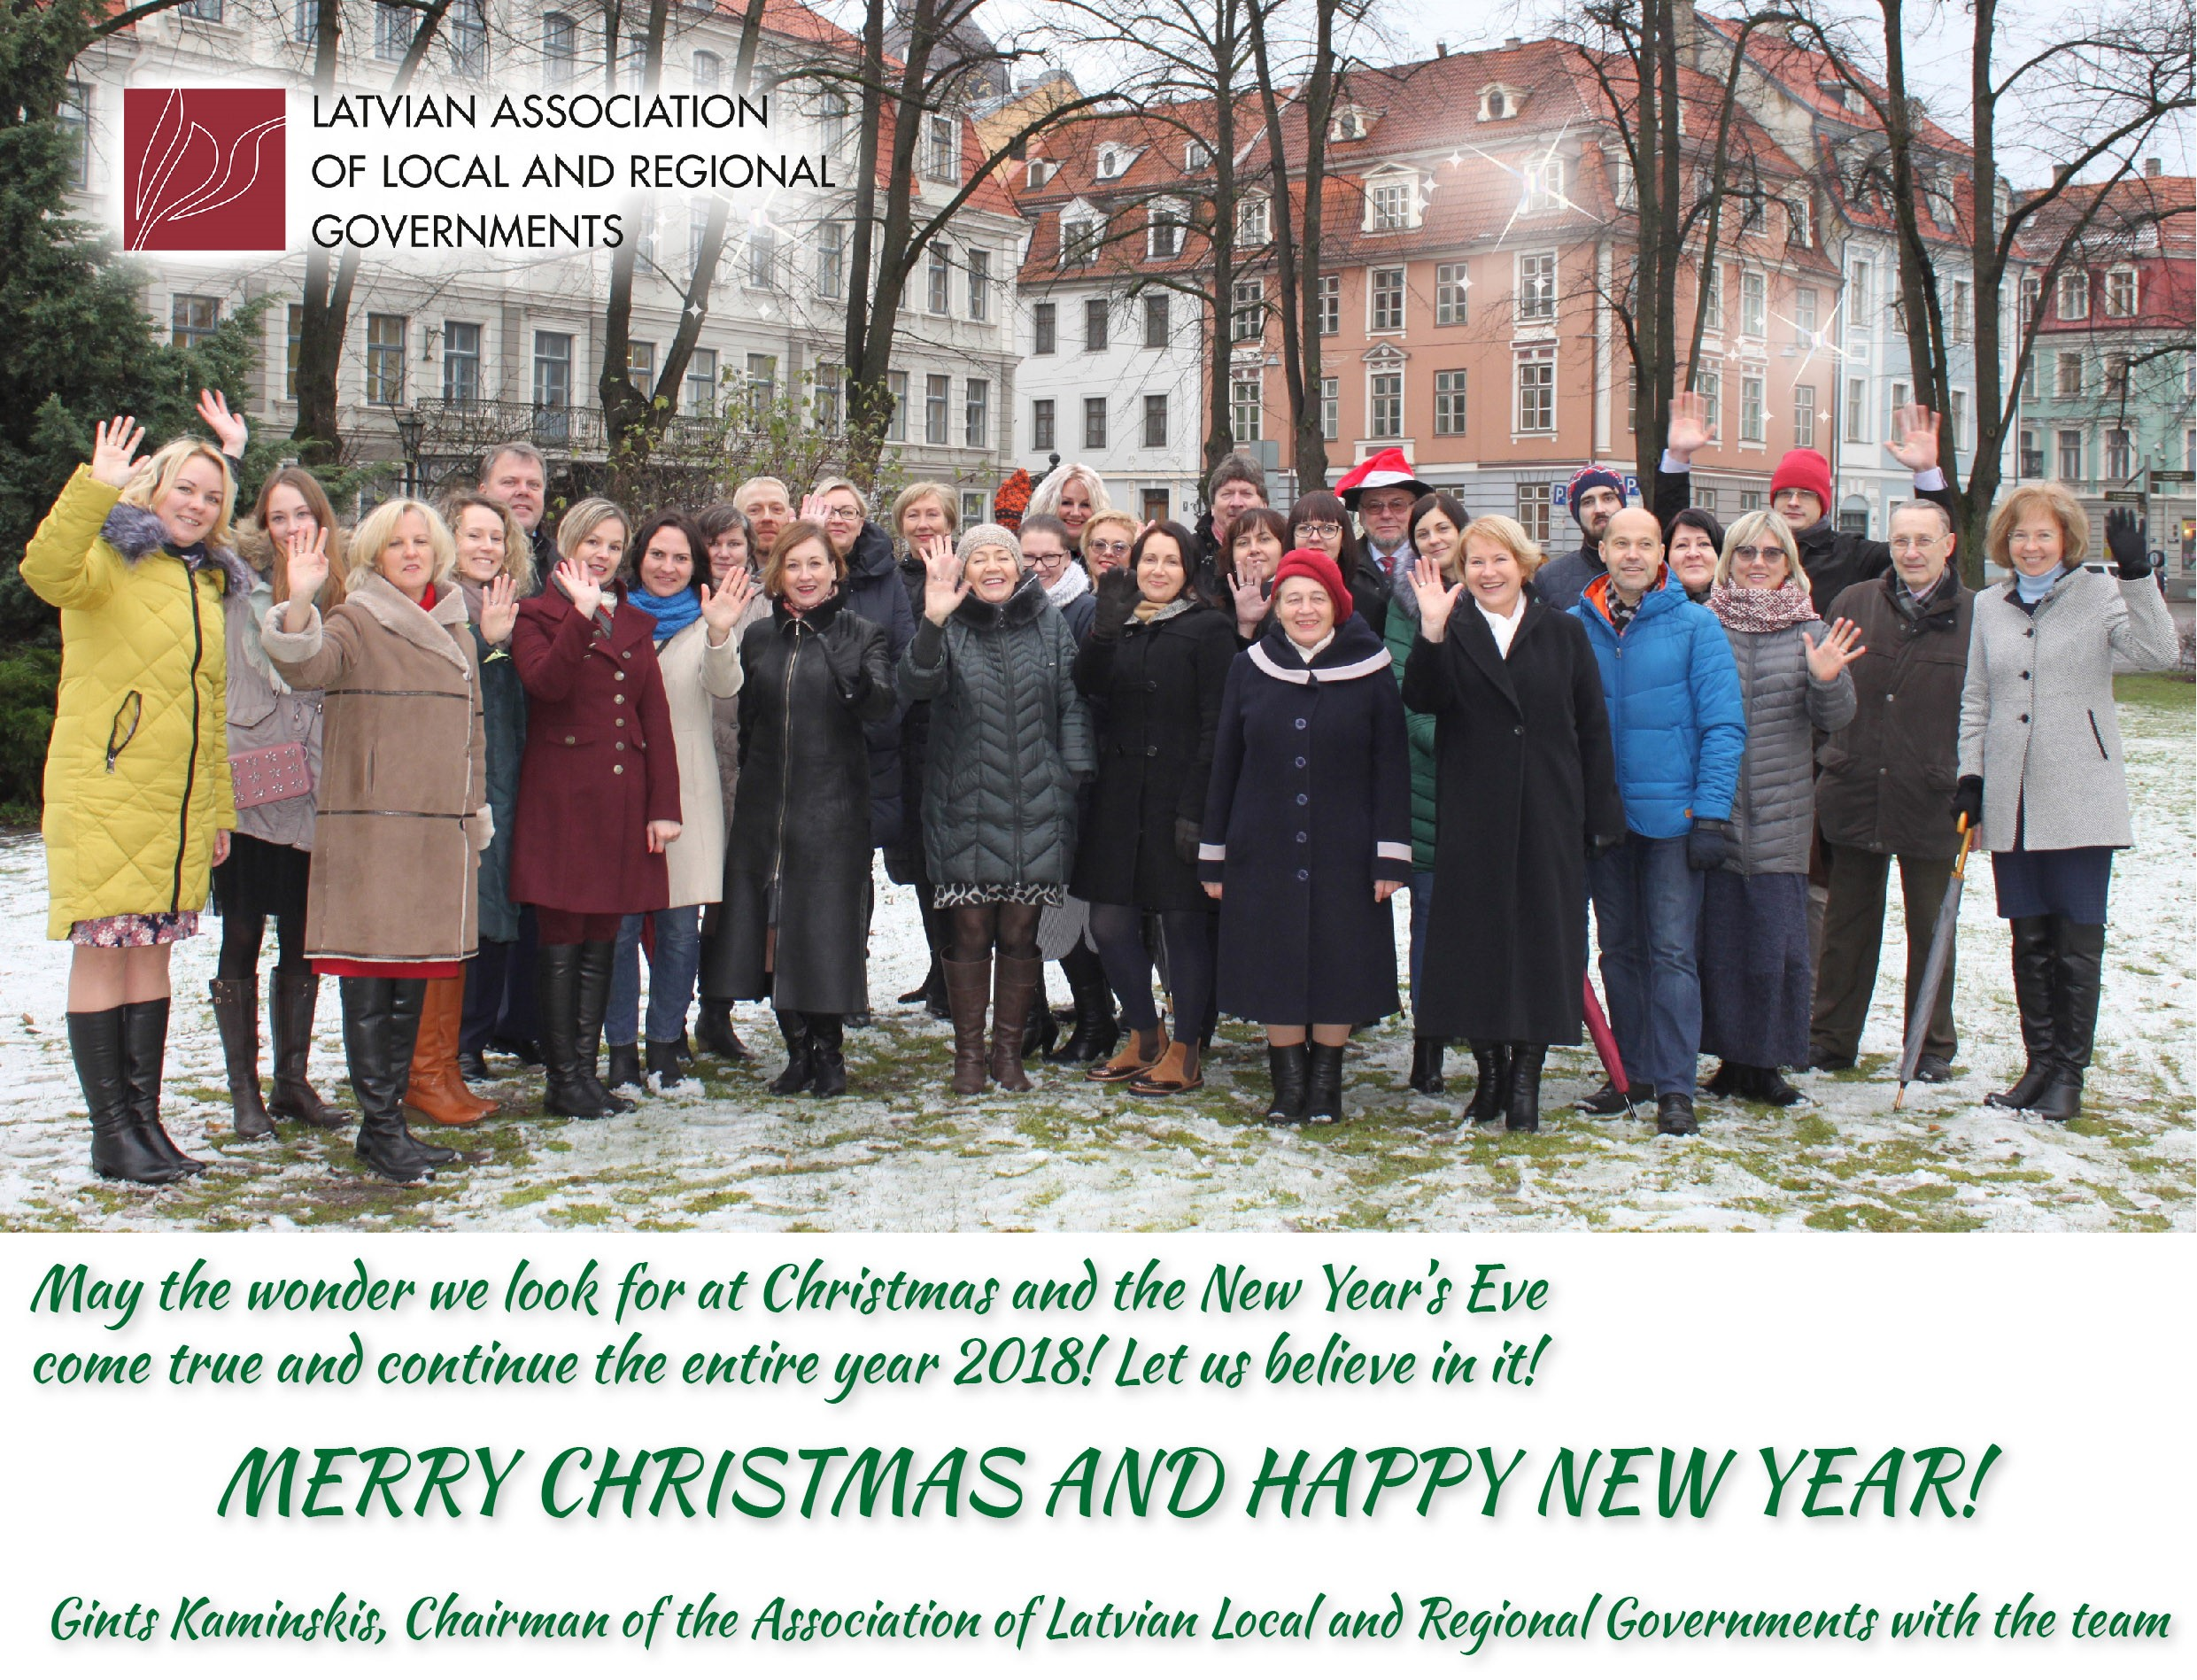 We wish you beautiful Christmas and all the best in New Year!